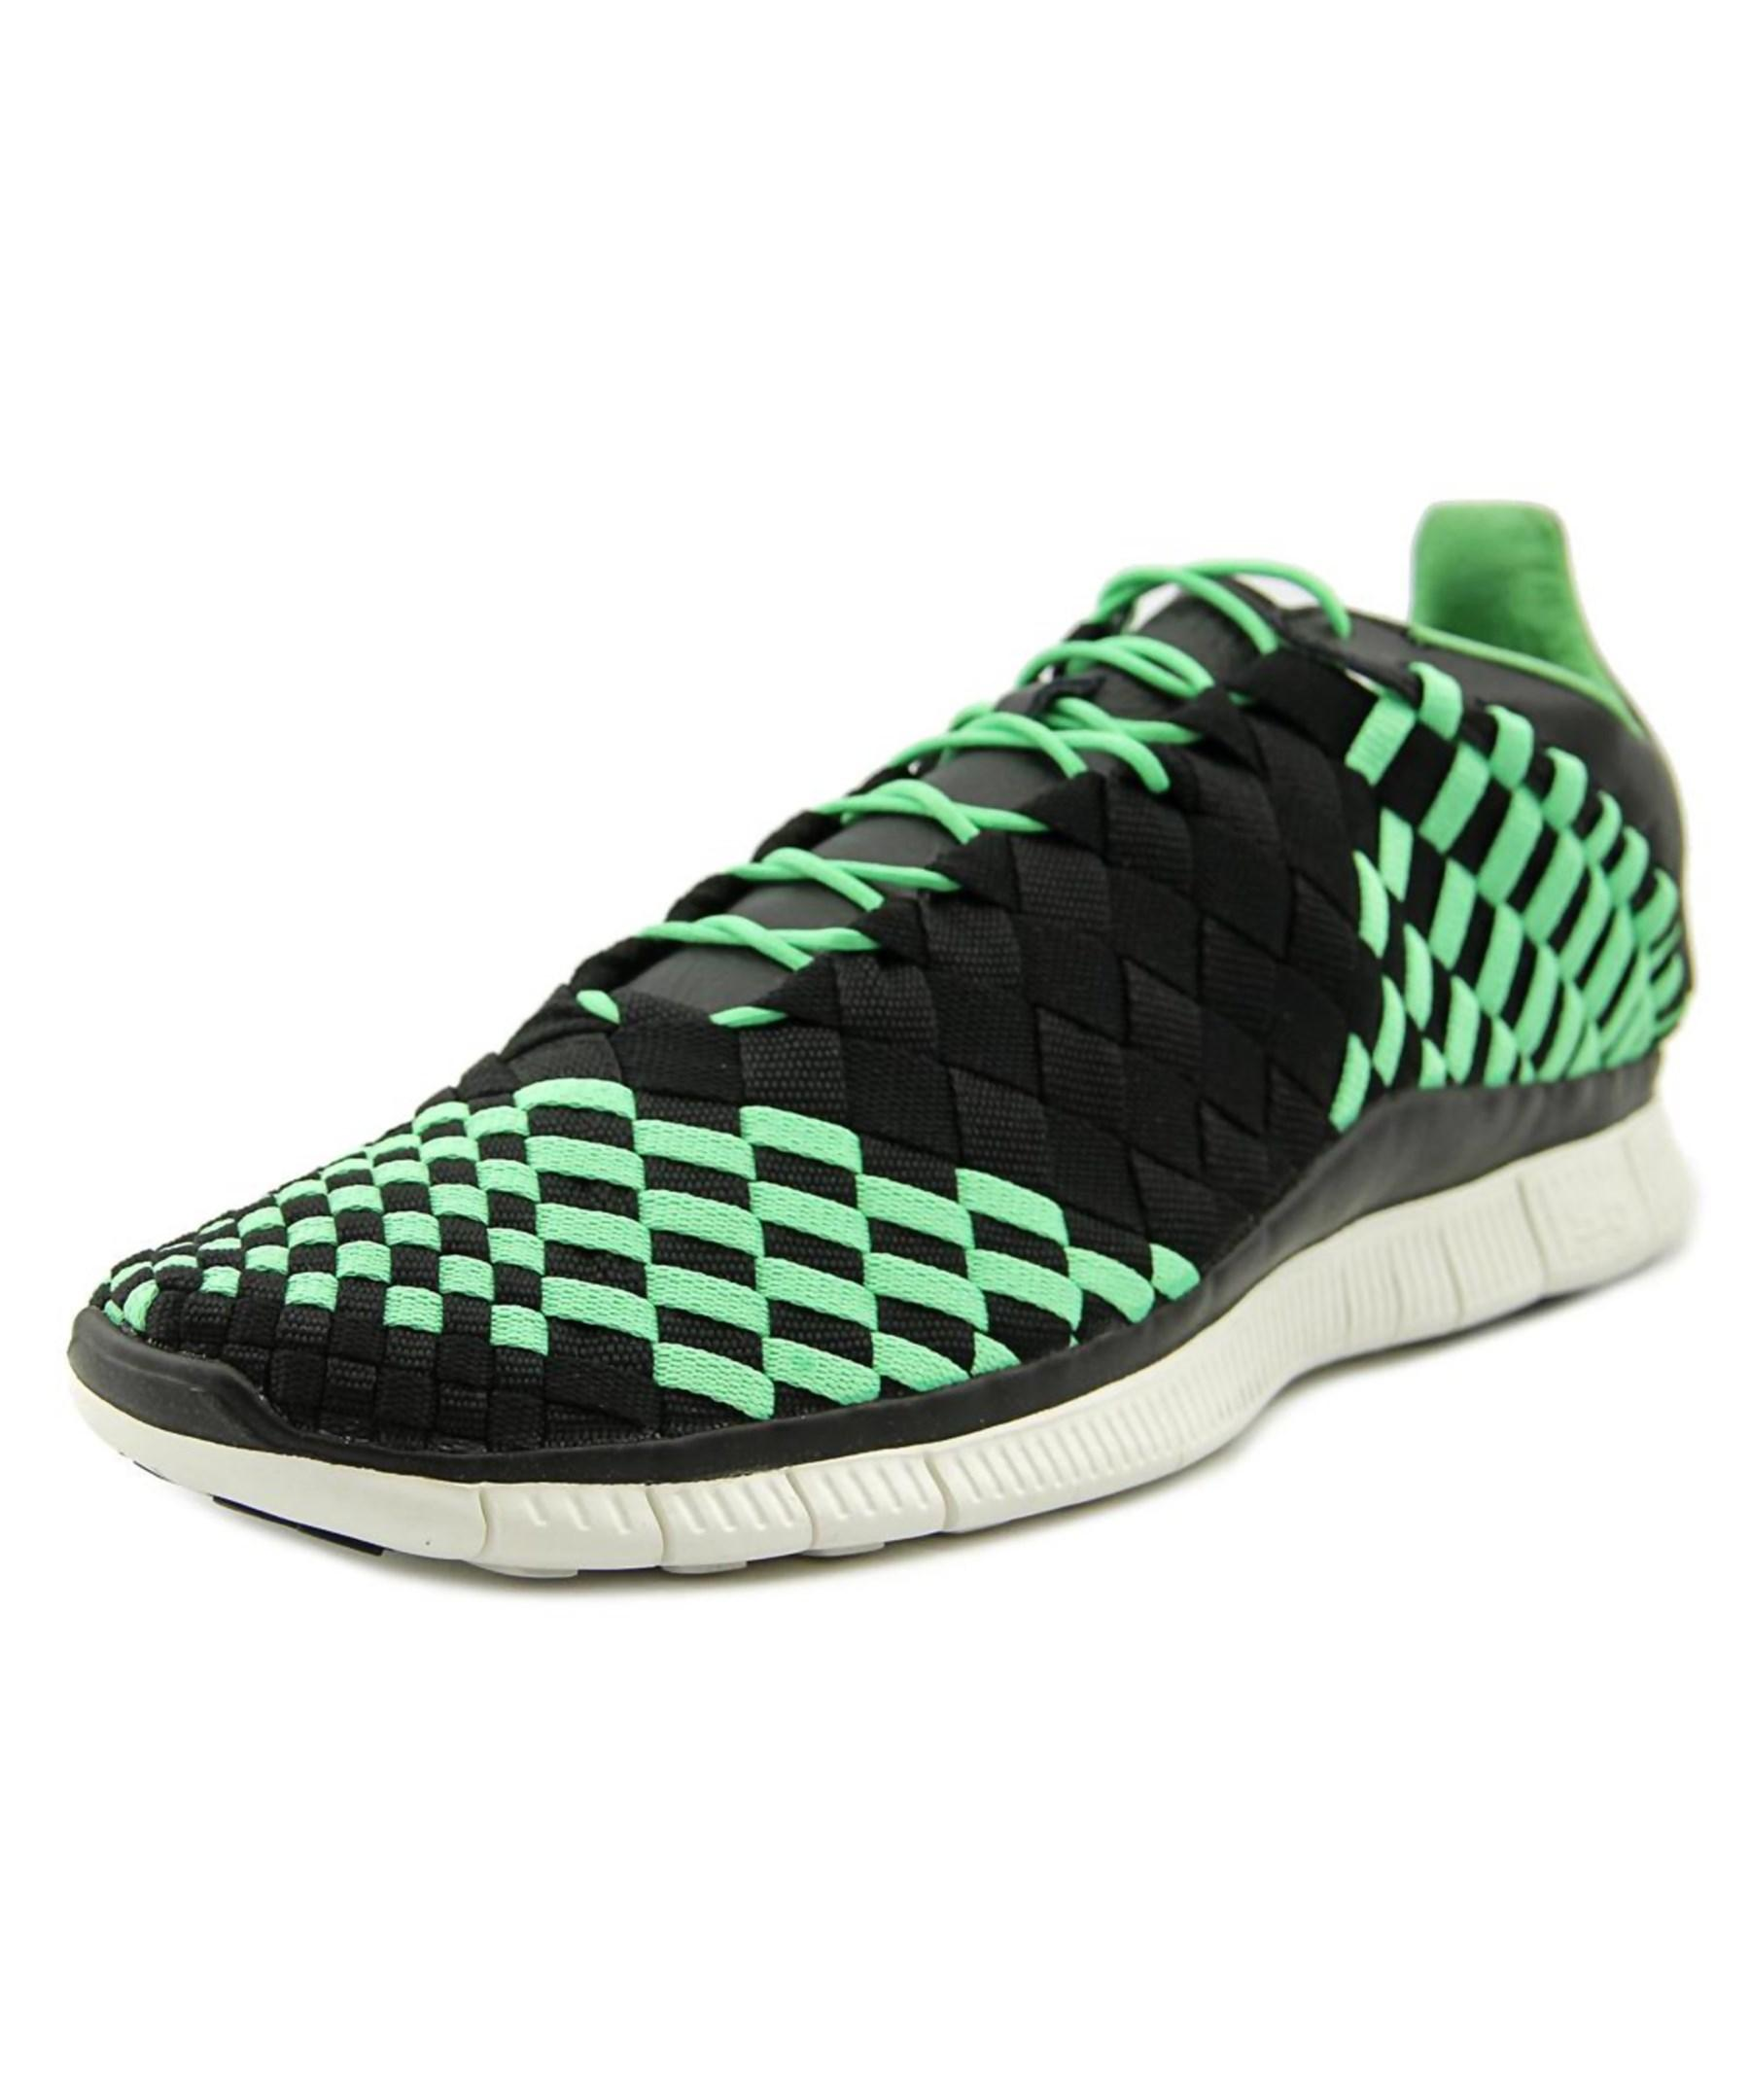 Model The Nike MayFly Returns In Four New Woven Colorways Exclusively In A Womens Size Run For Spring 2016 One Of The Lightest Running Shoes Nikes Ever Made, The MayFly Was Created In Stark Contrast To The Theory Of Longevity, As The